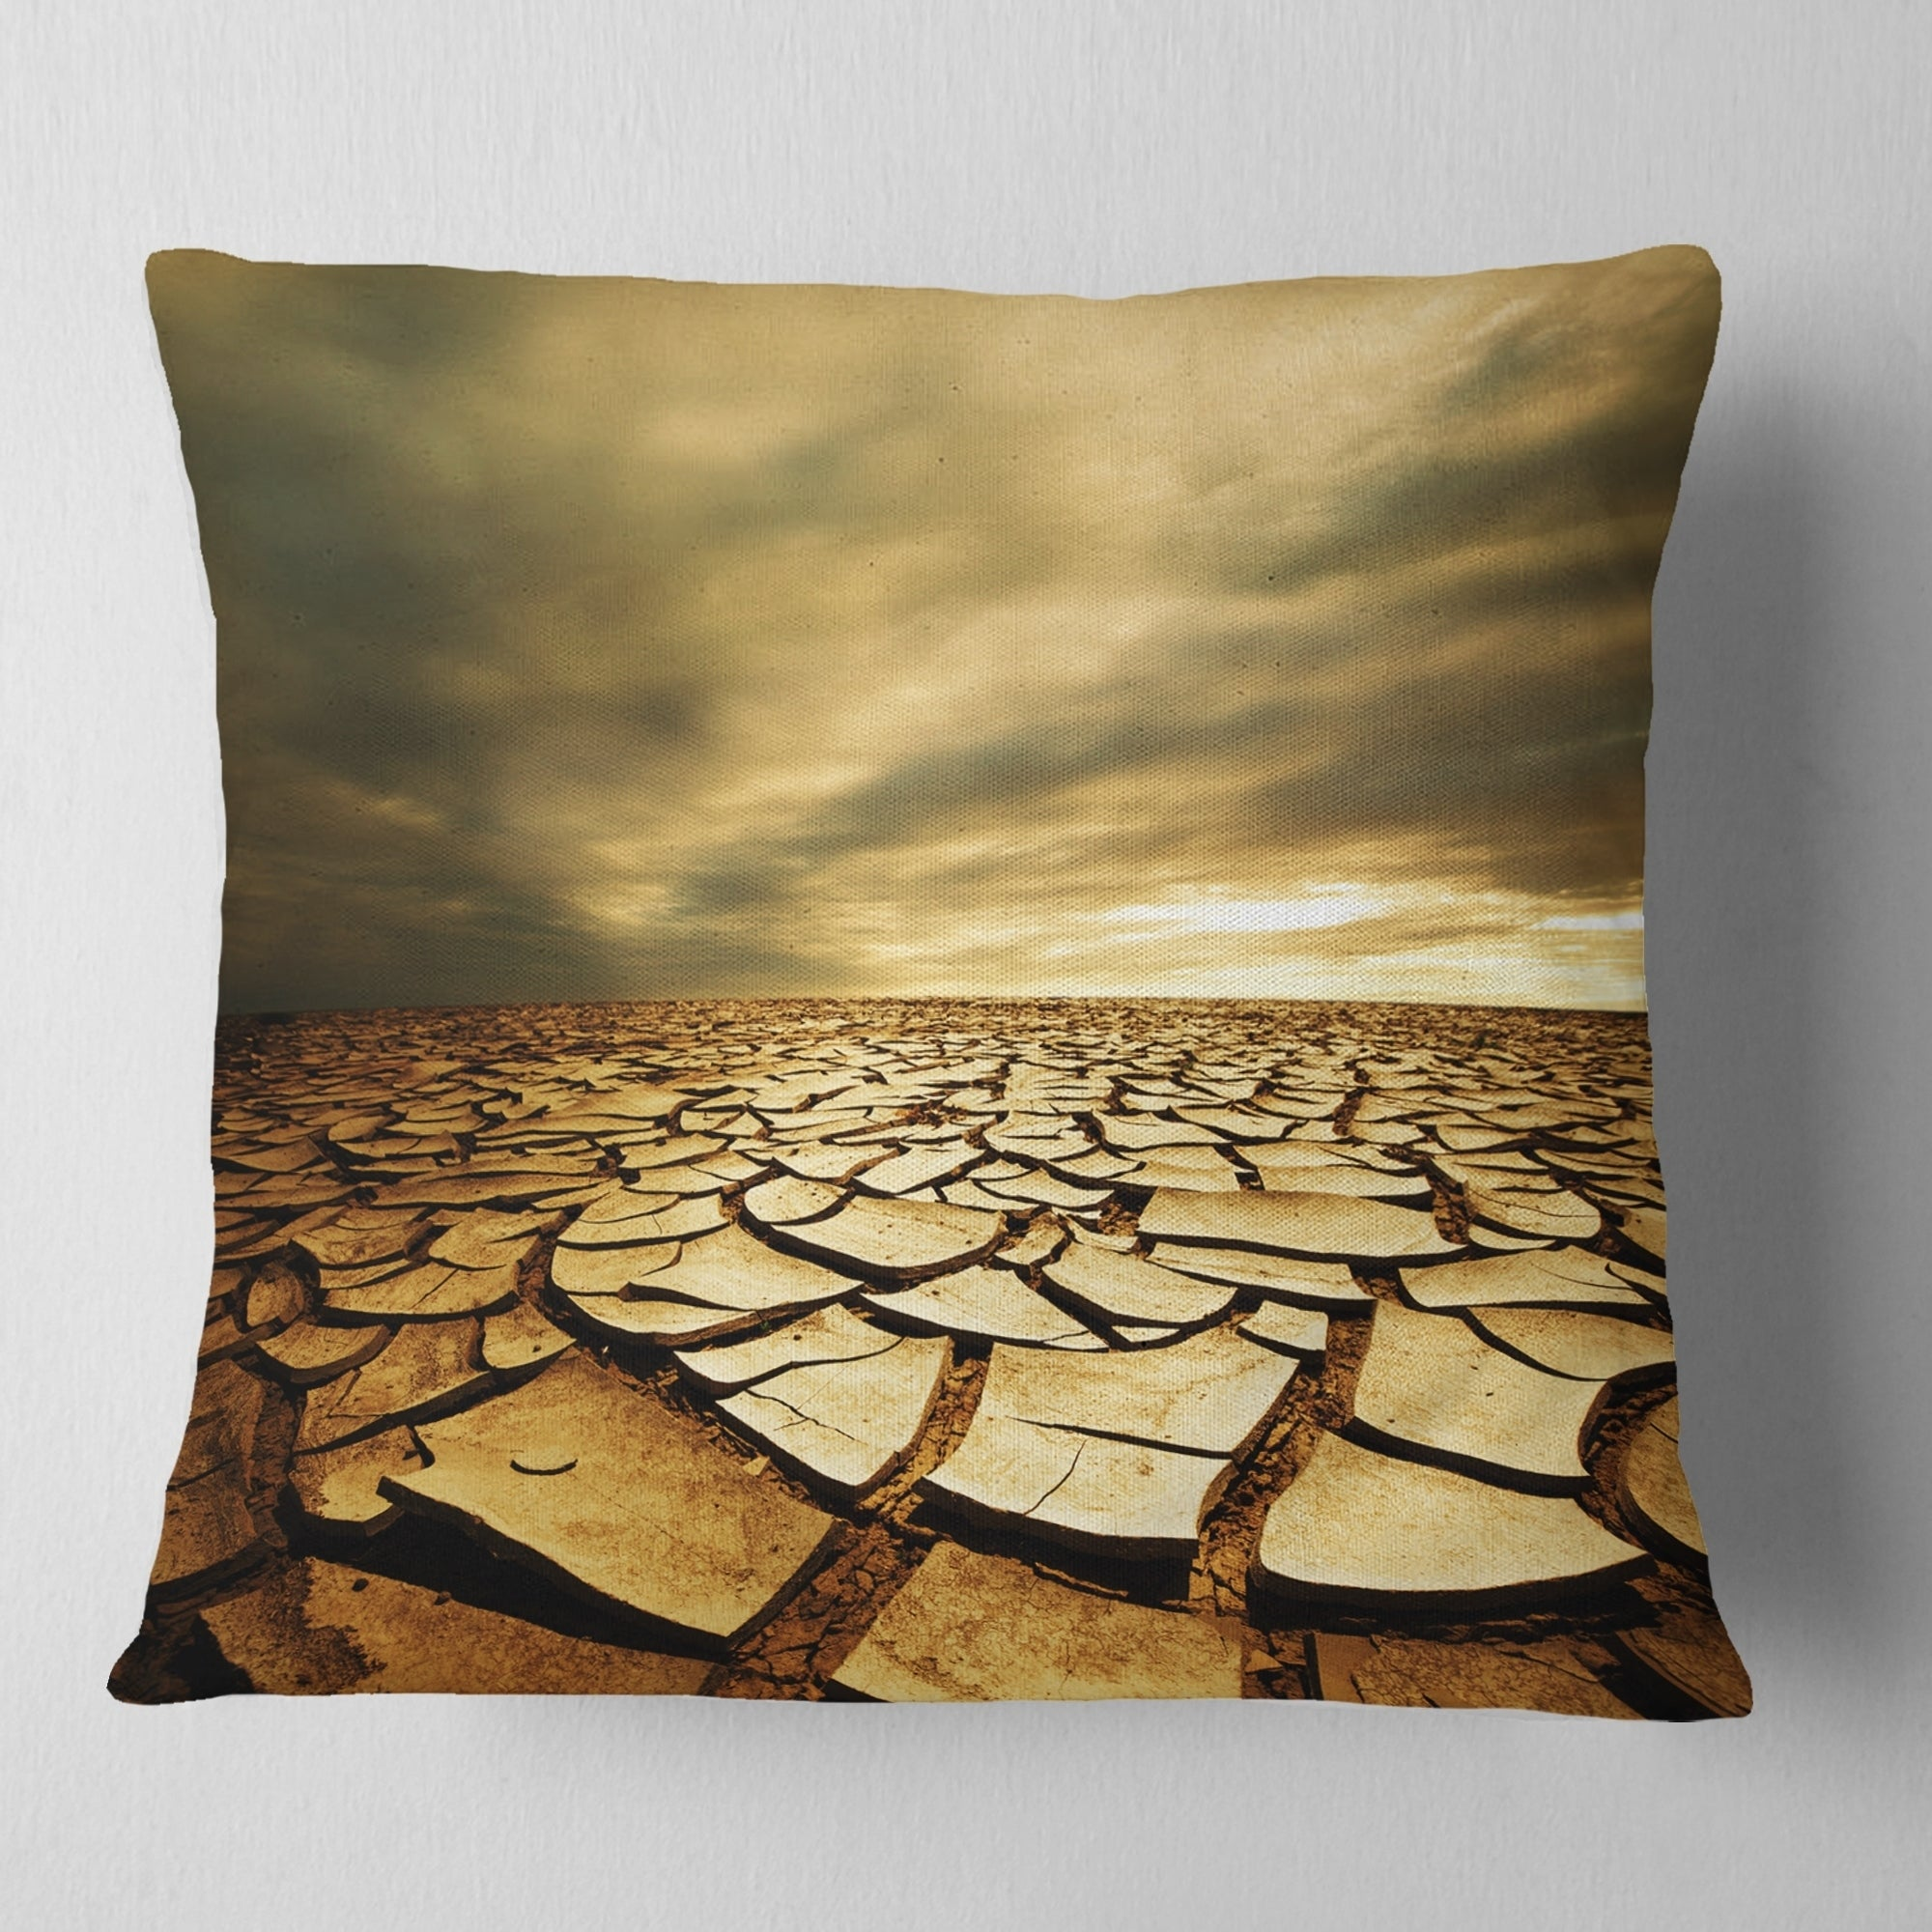 Designart Broken Drought Land With Dark Clouds African Landscape Printed Throw Pillow On Sale Overstock 20950220